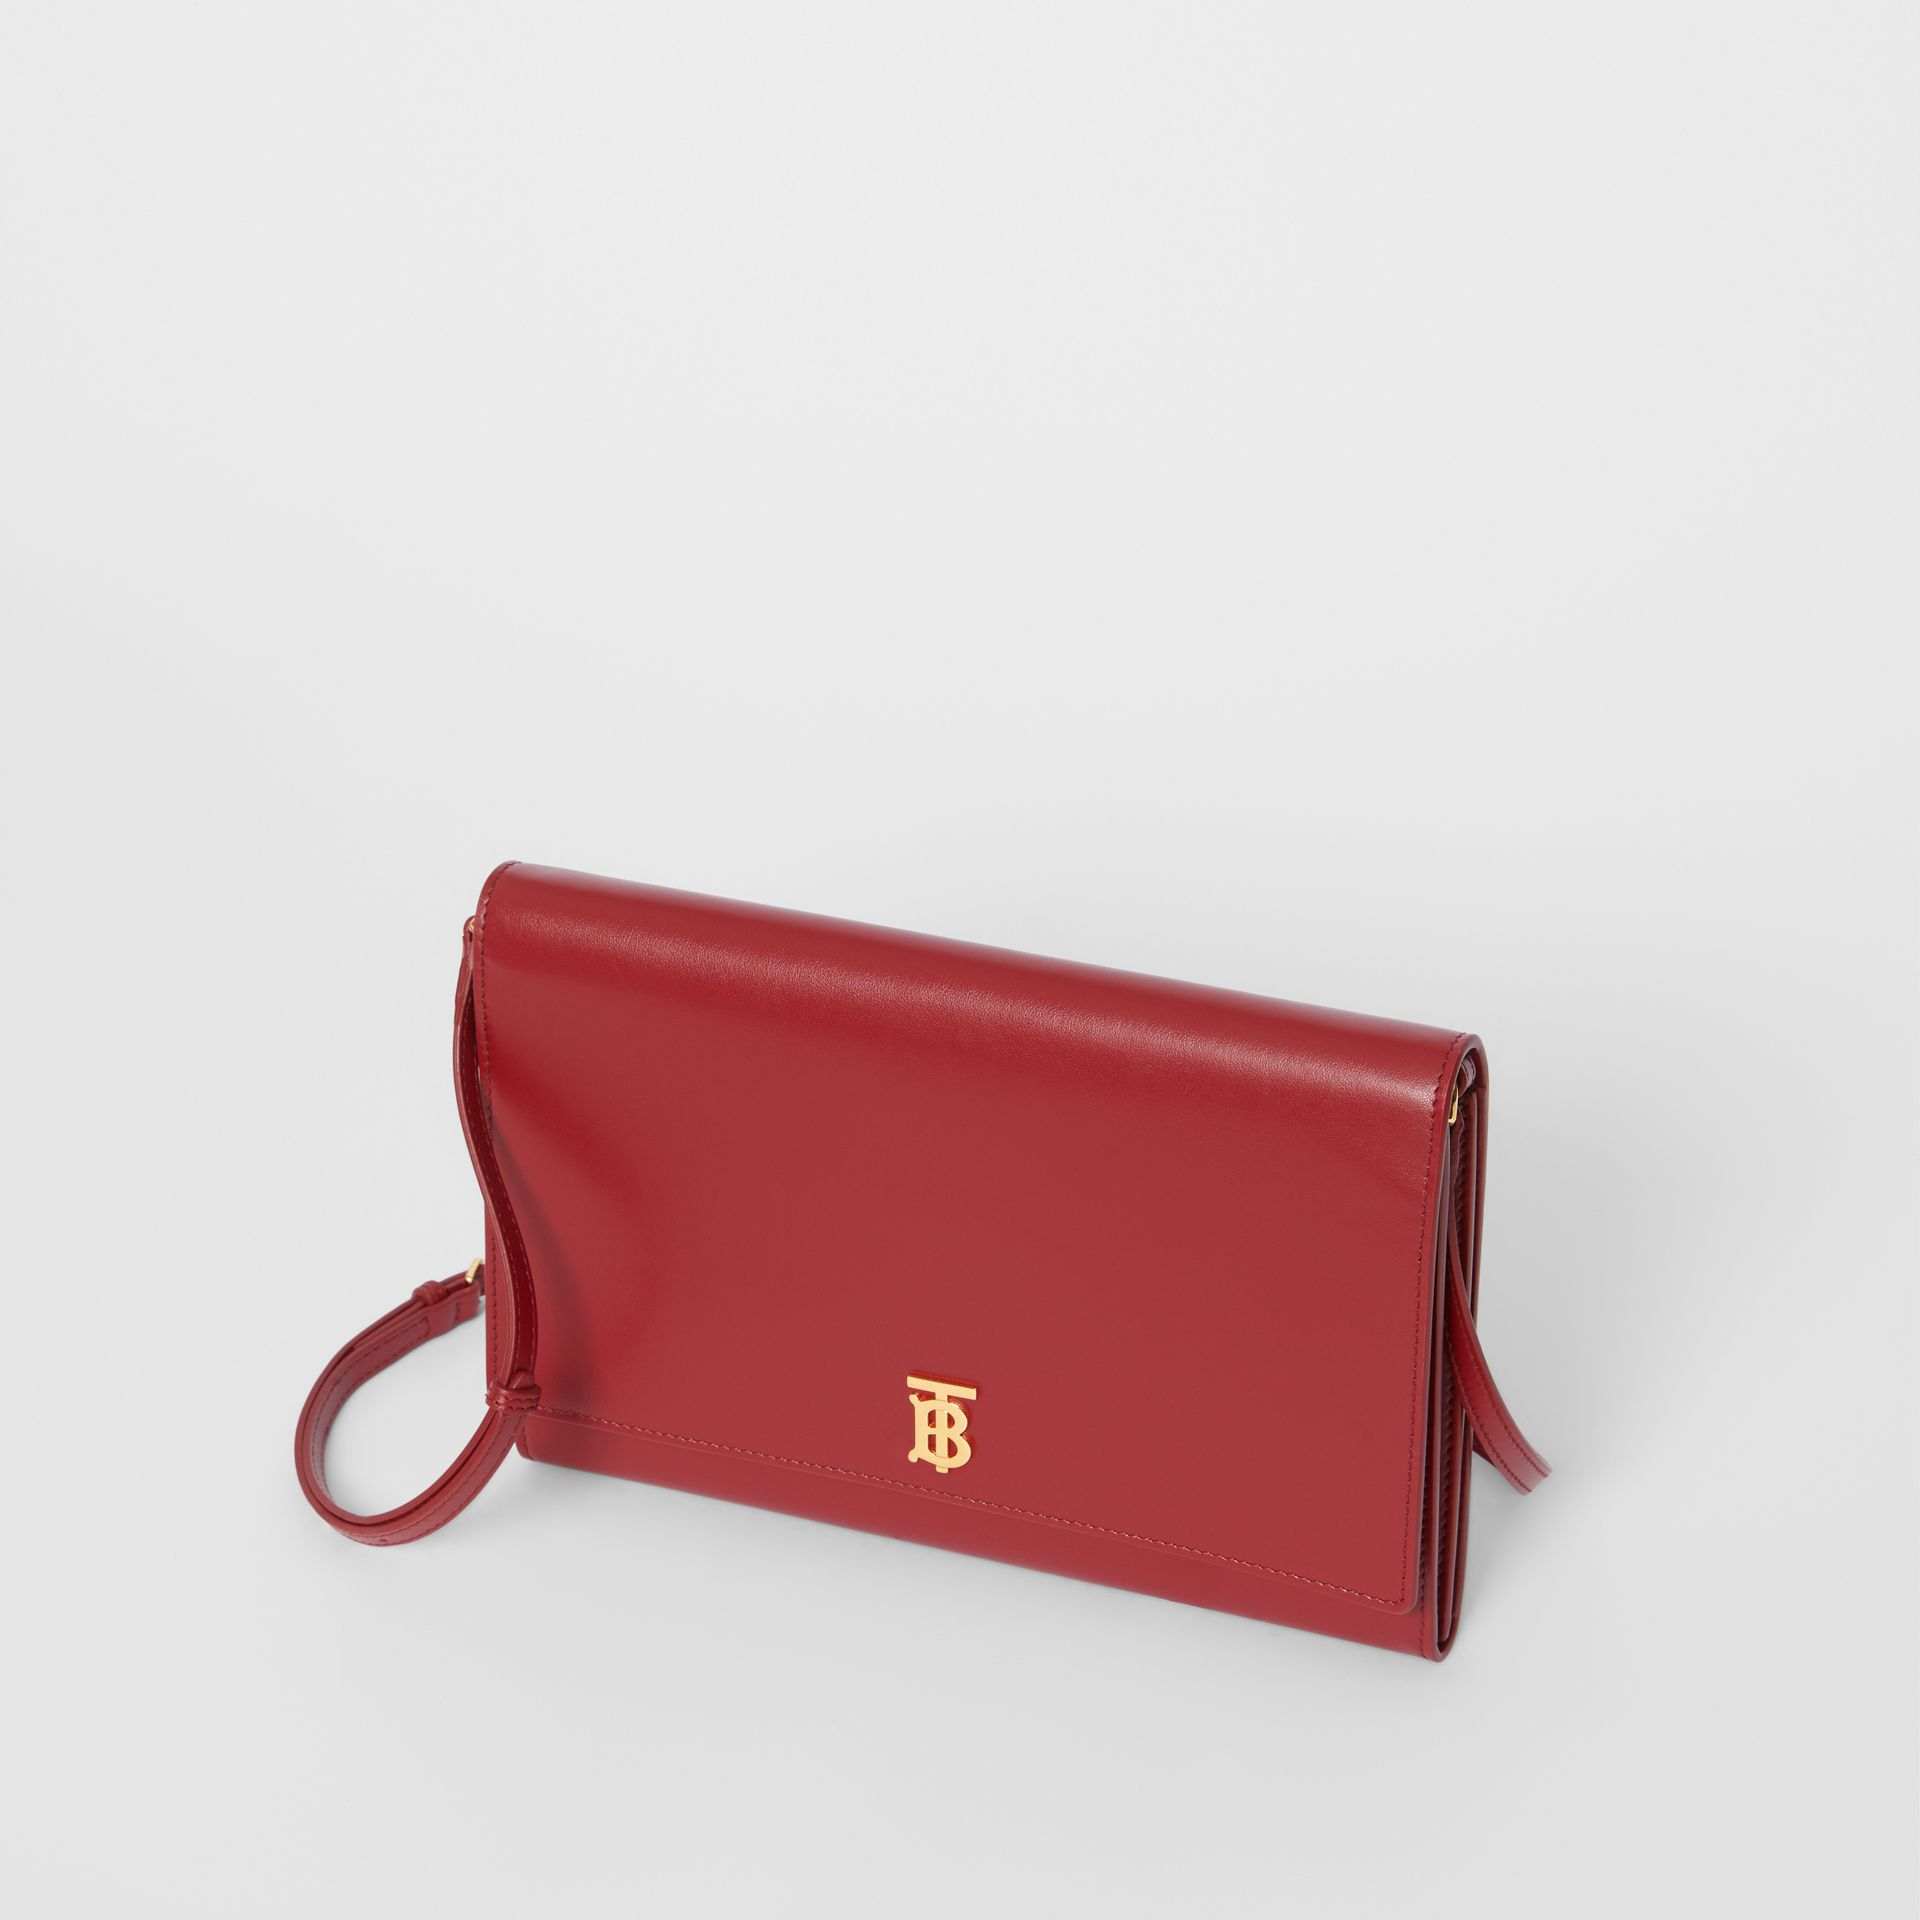 Monogram Motif Leather Bag with Detachable Strap in Crimson - Women | Burberry - gallery image 3